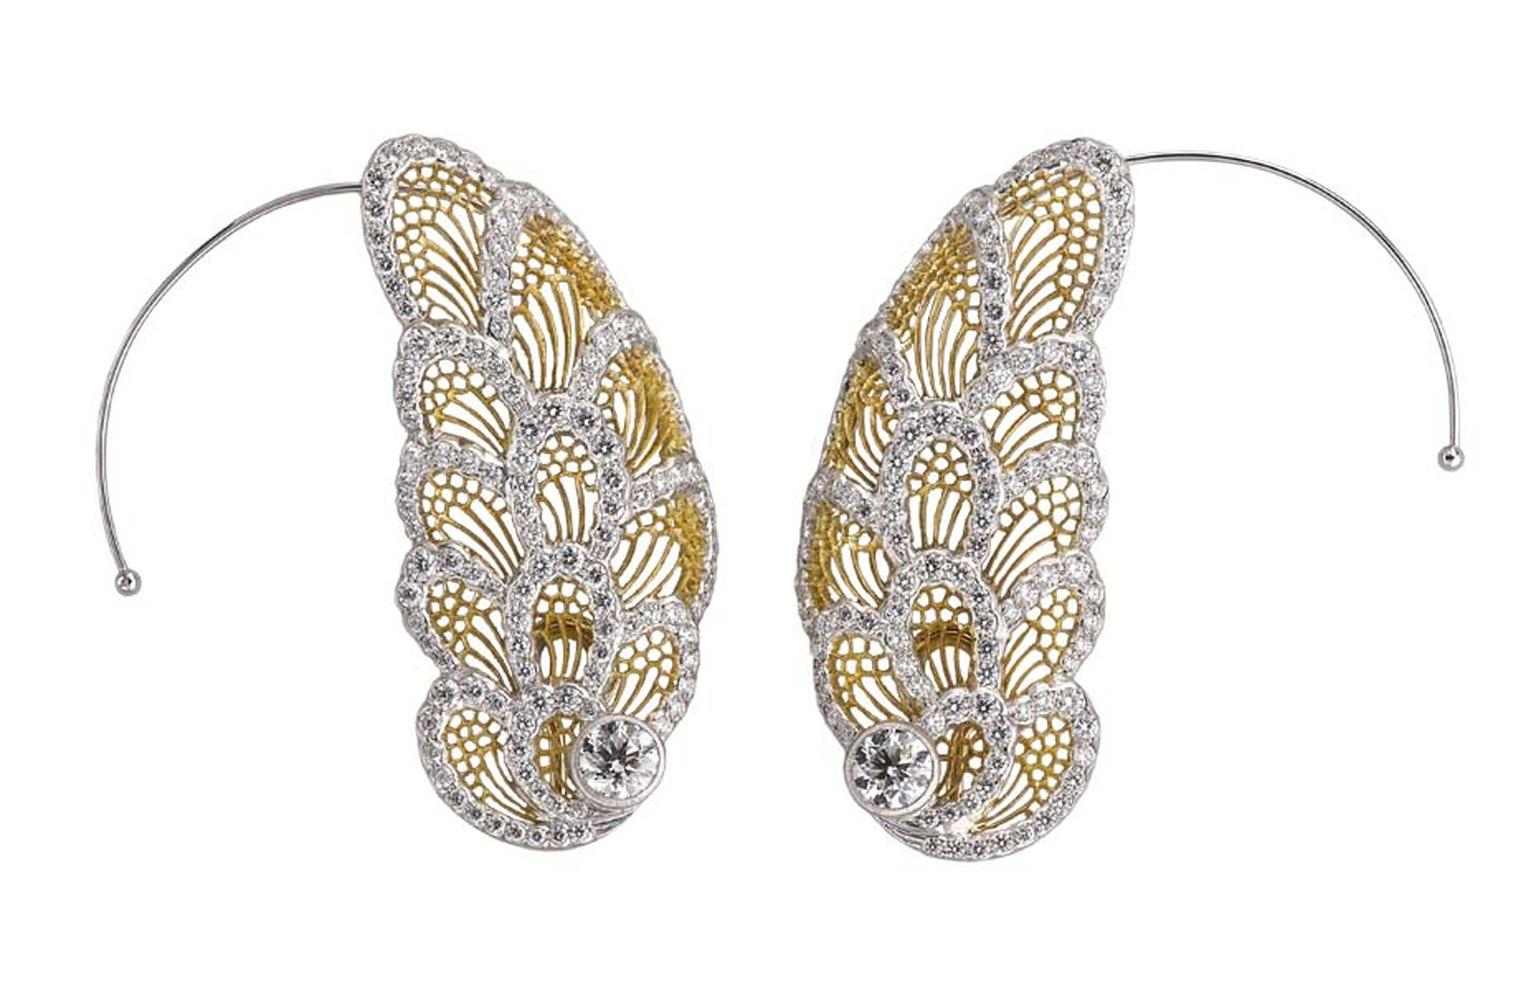 "Buccellati's high jewellery wing earrings, entirely handcrafted with the Tulle technique and reminiscent of Redon's ""Fall of Phaeton"" painting, fly along the earlobe. The feather-like elements of the ear cuffs are set with diamonds, and a subtle hook prev"